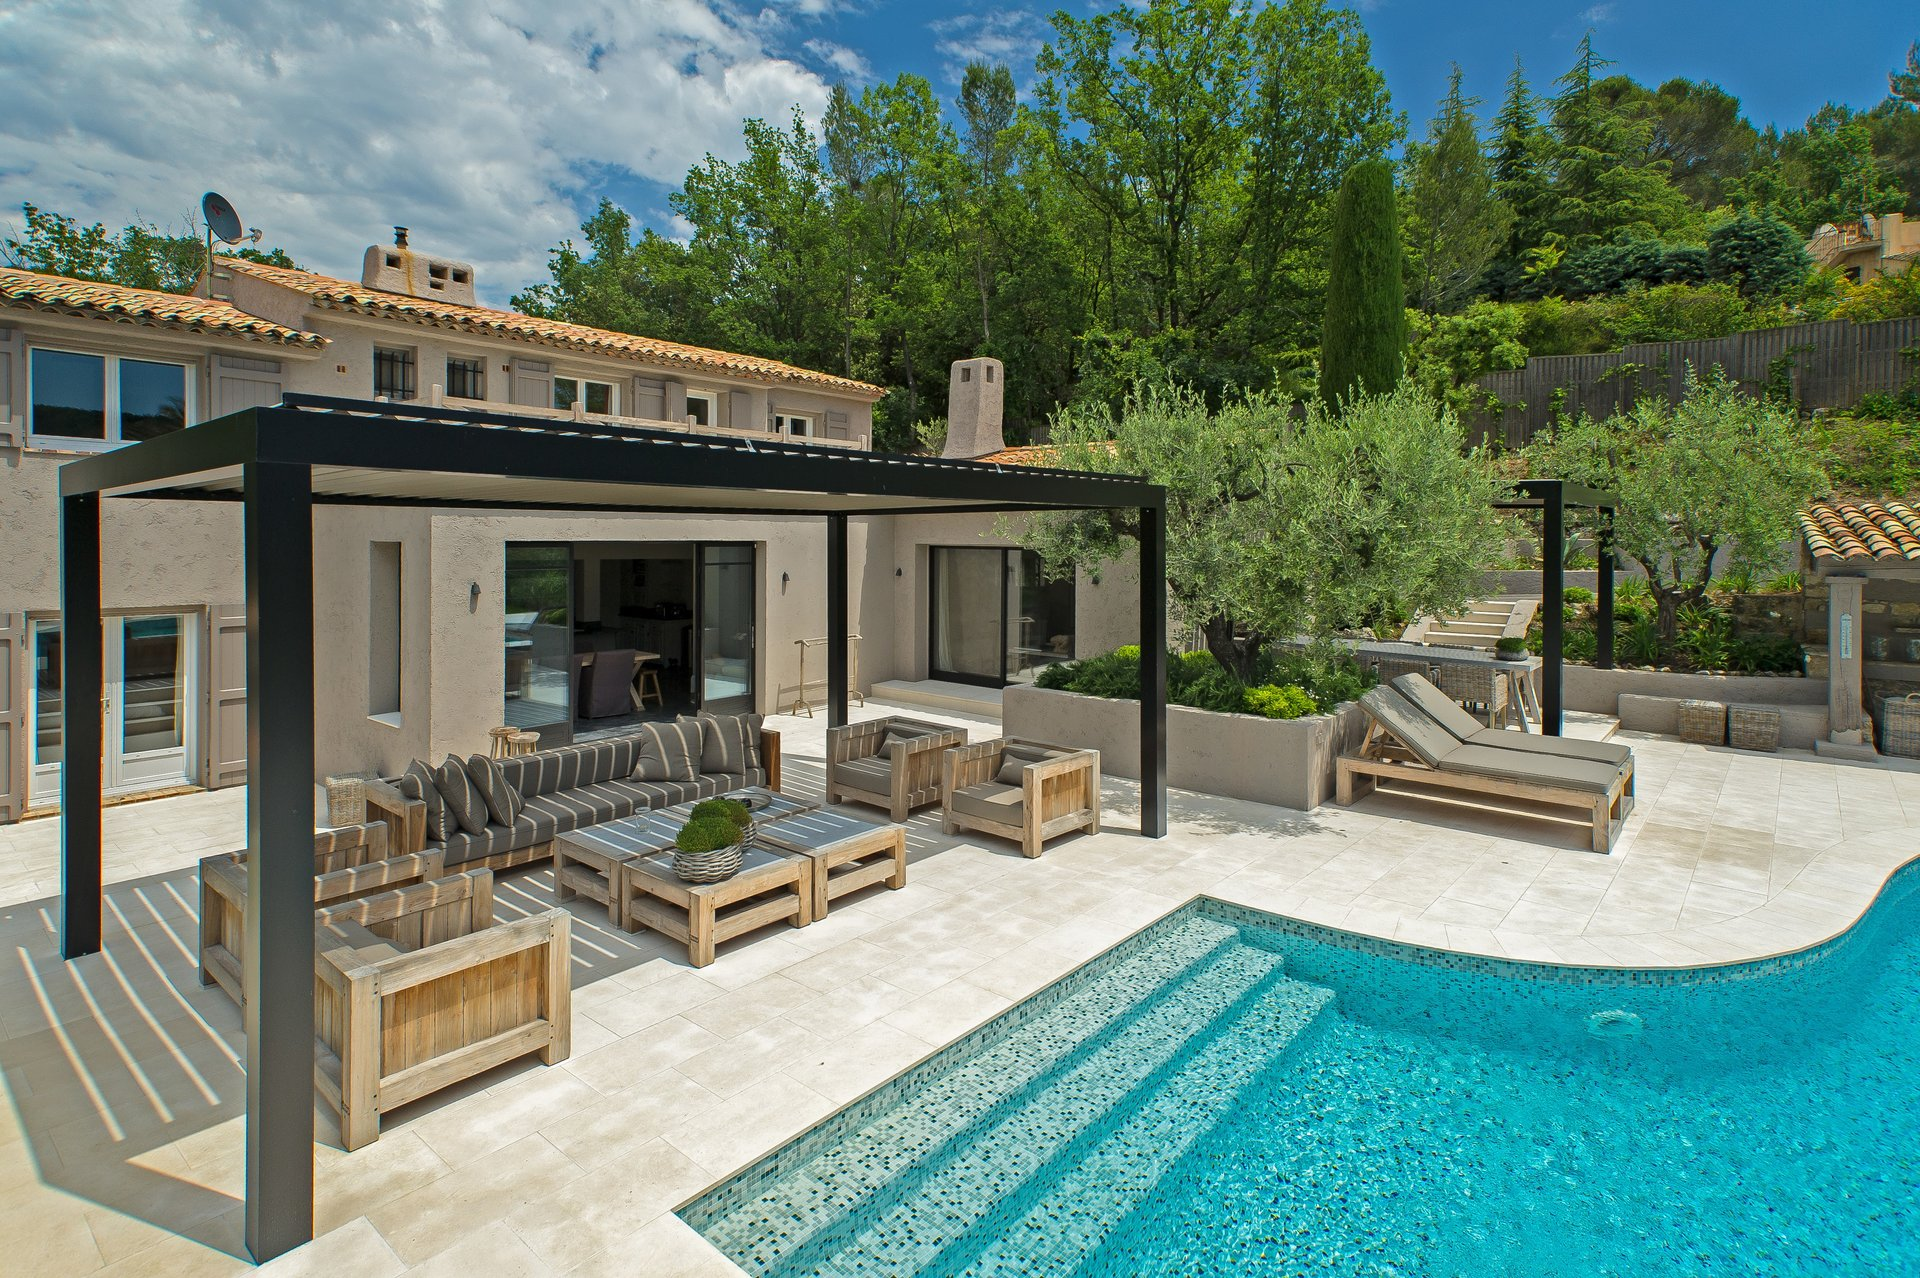 Luxury villa with swimming pool in residential domain